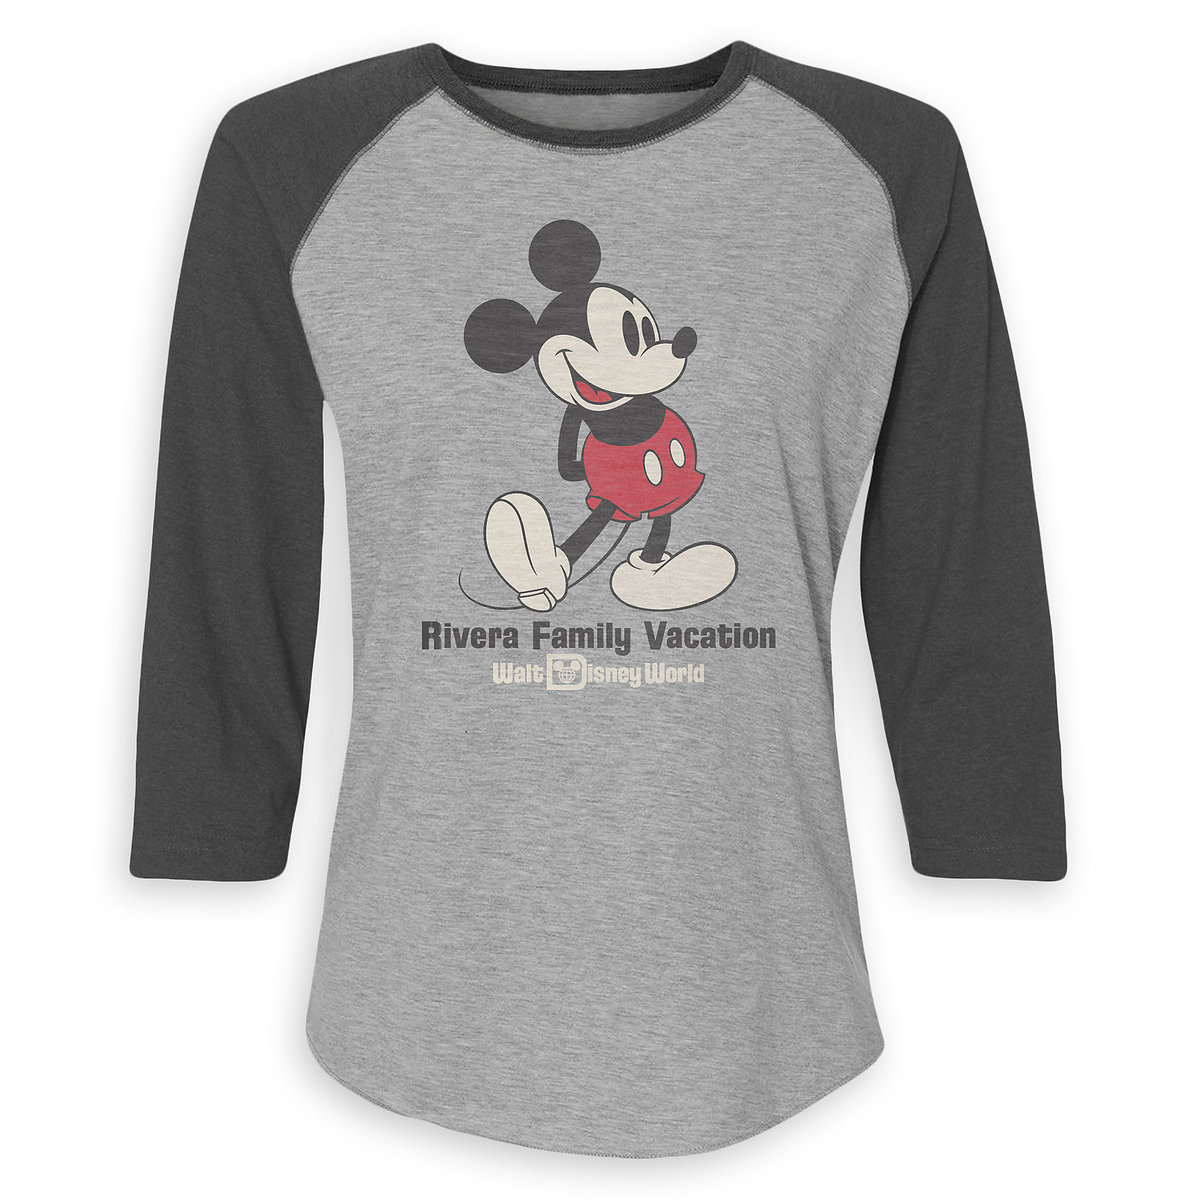 bbd18ccb Product Image of Women's Mickey Mouse Family Vacation Raglan T-Shirt - Walt Disney  World